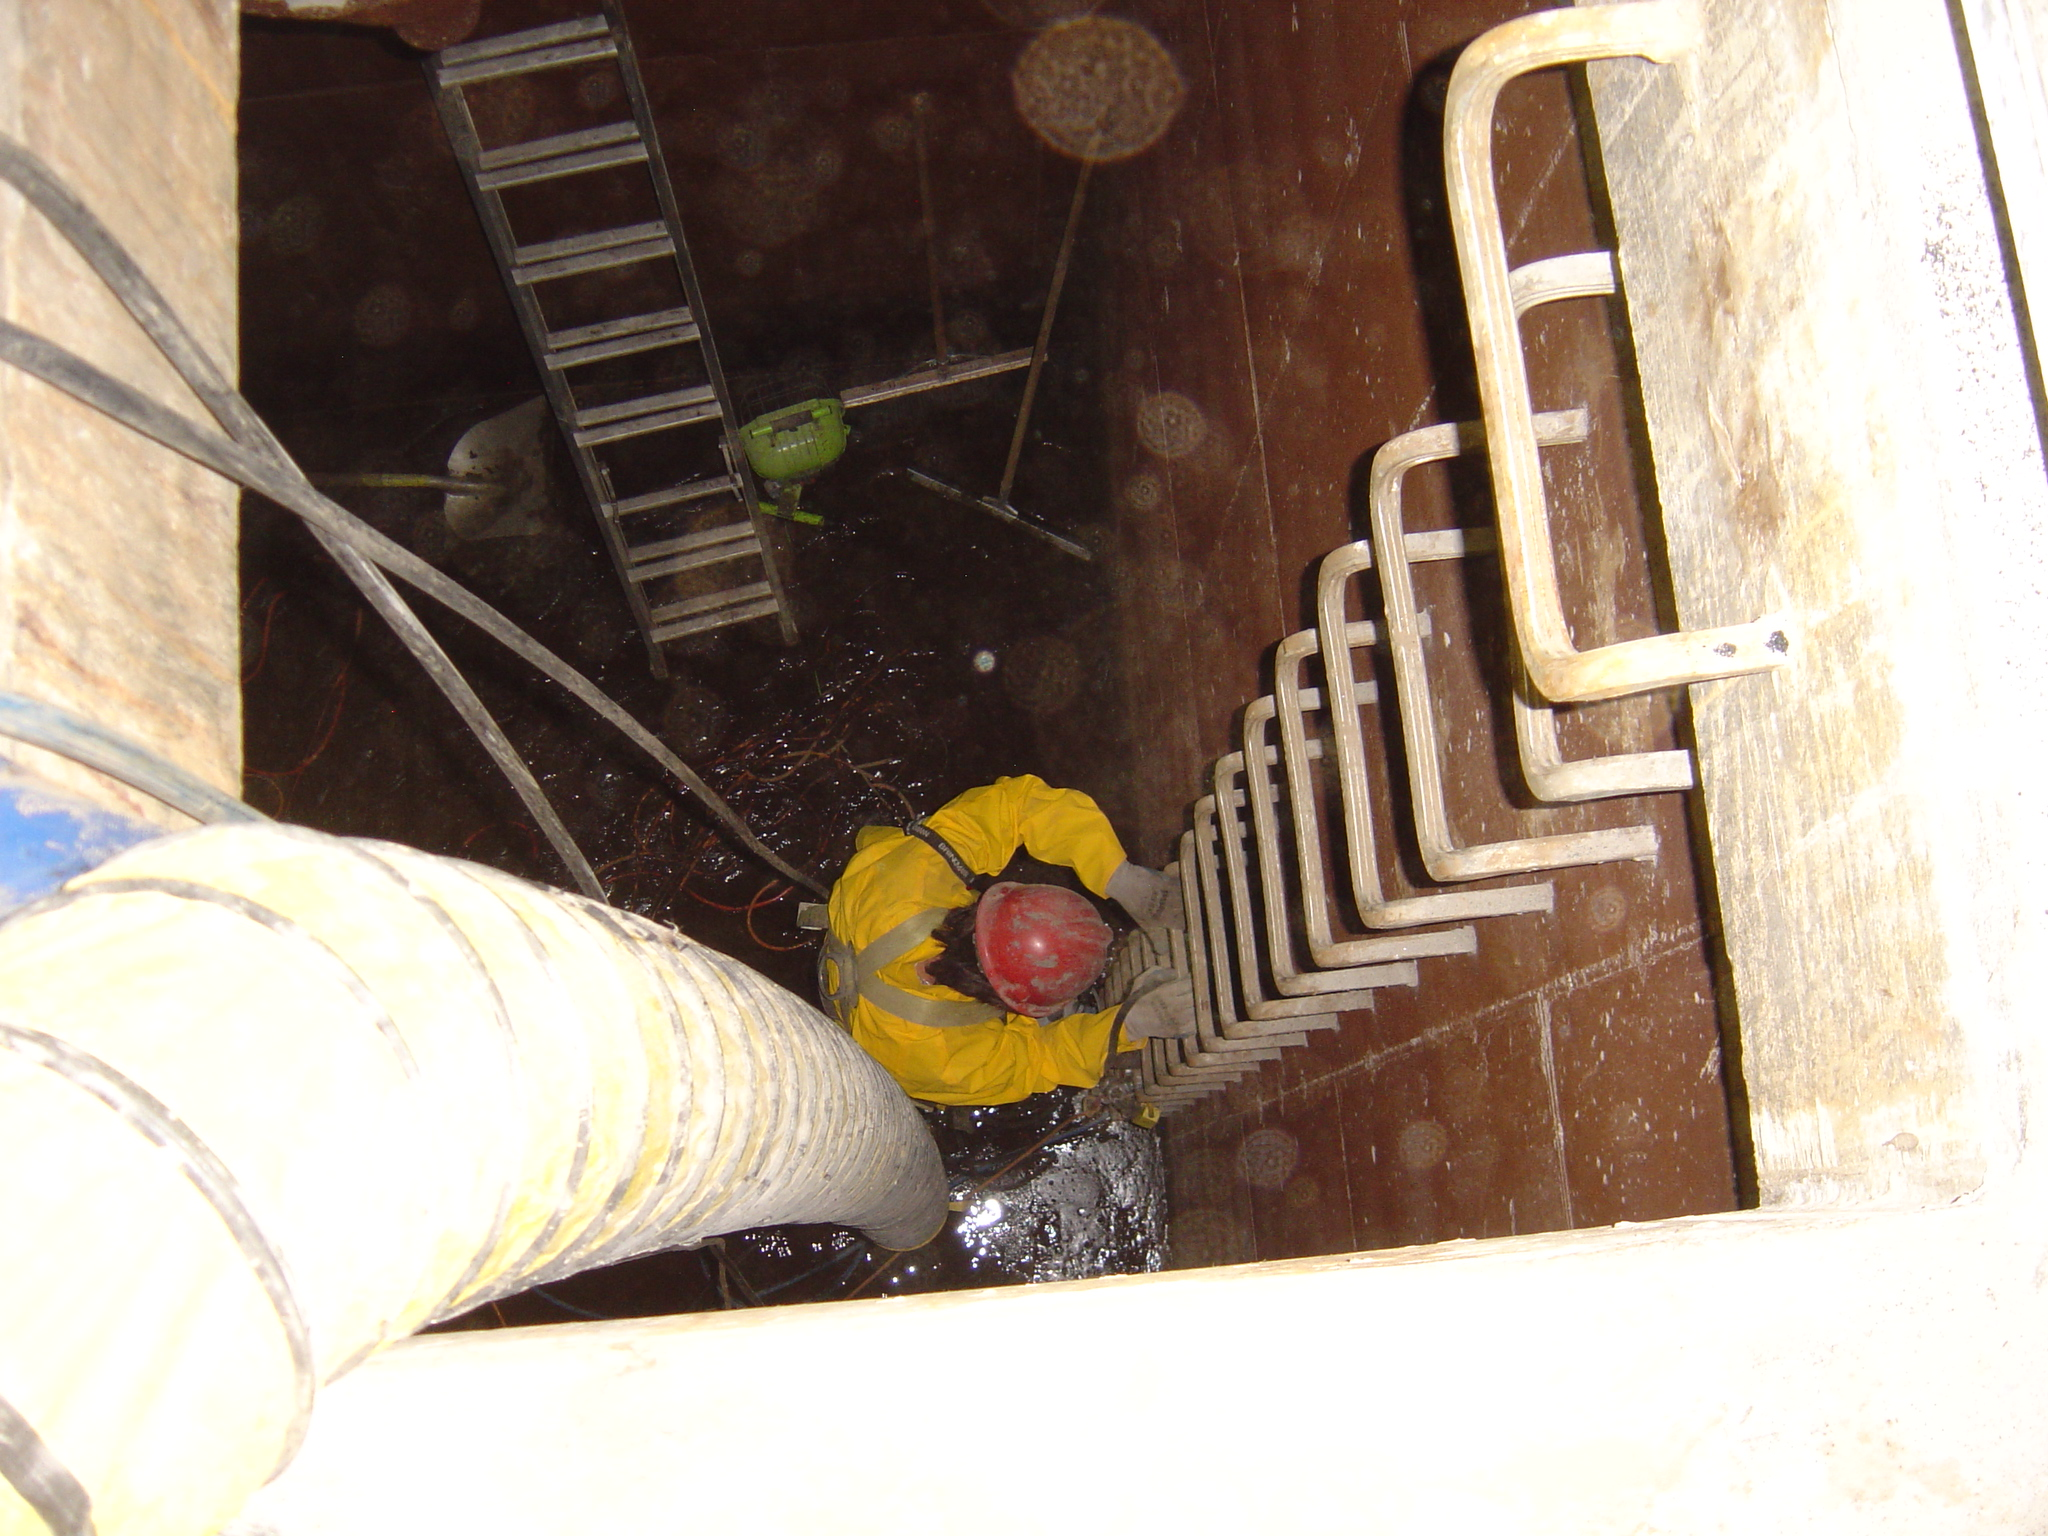 Water Tank Confined Space : Pressure washing a confined space underground tank video